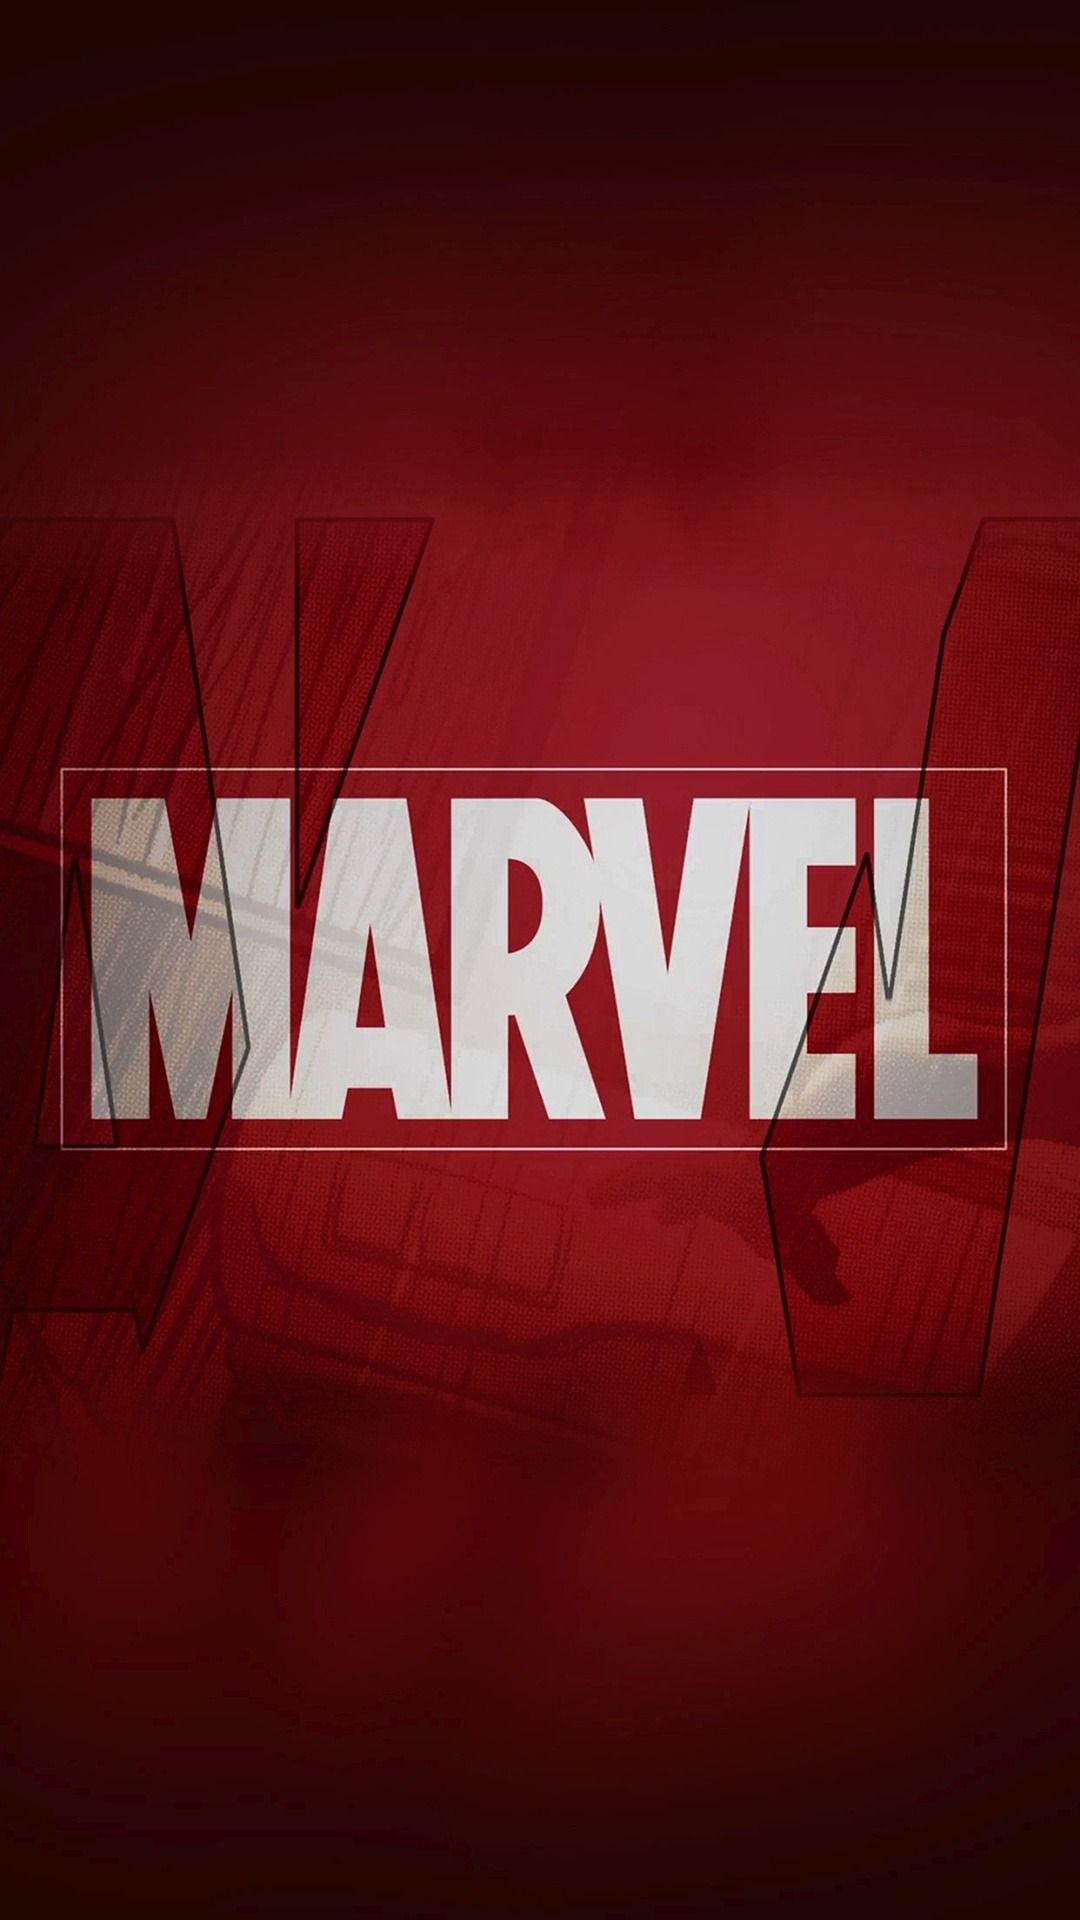 Mobile Wallpapers Marvel Comics Logo Iphone 6 Hd Wallpaper Marvel